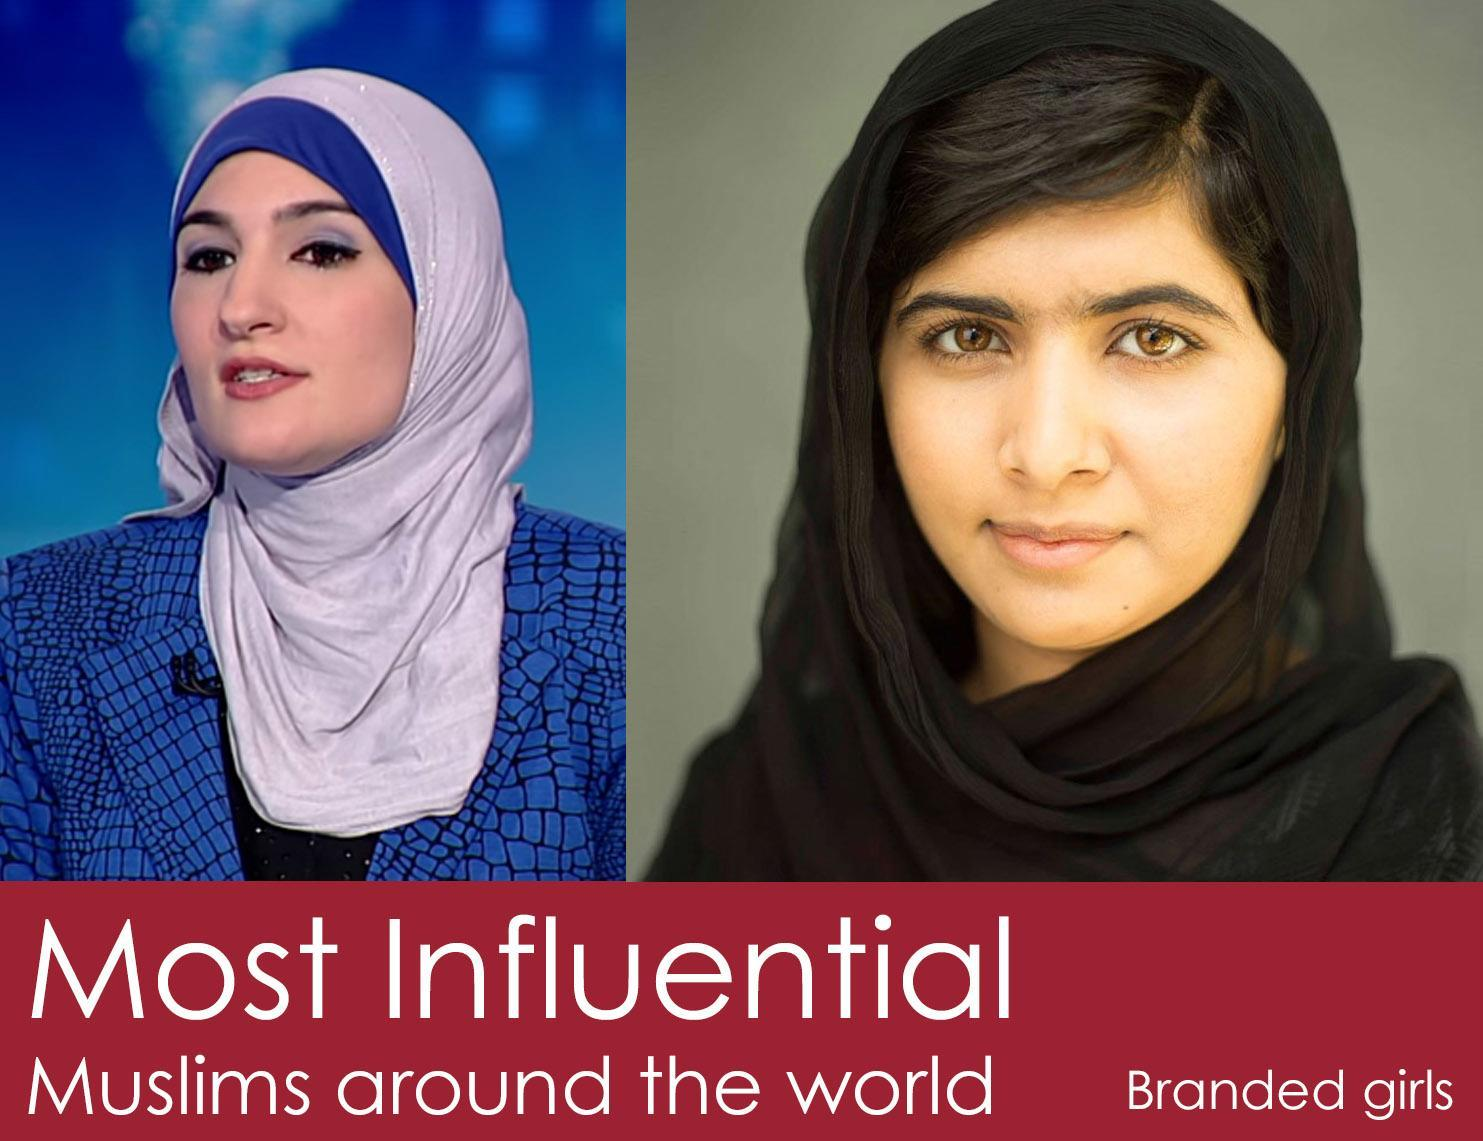 polyvore-sample-5 Famous Muslims-20 Most Influential Muslims in The World